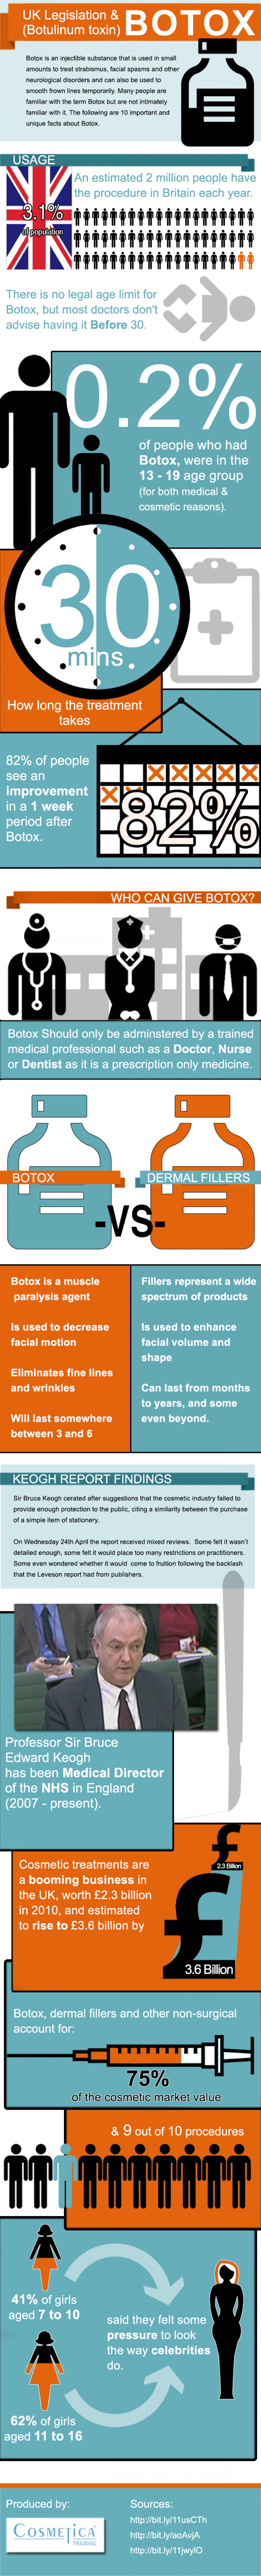 UK Legislation and Botox Infographic